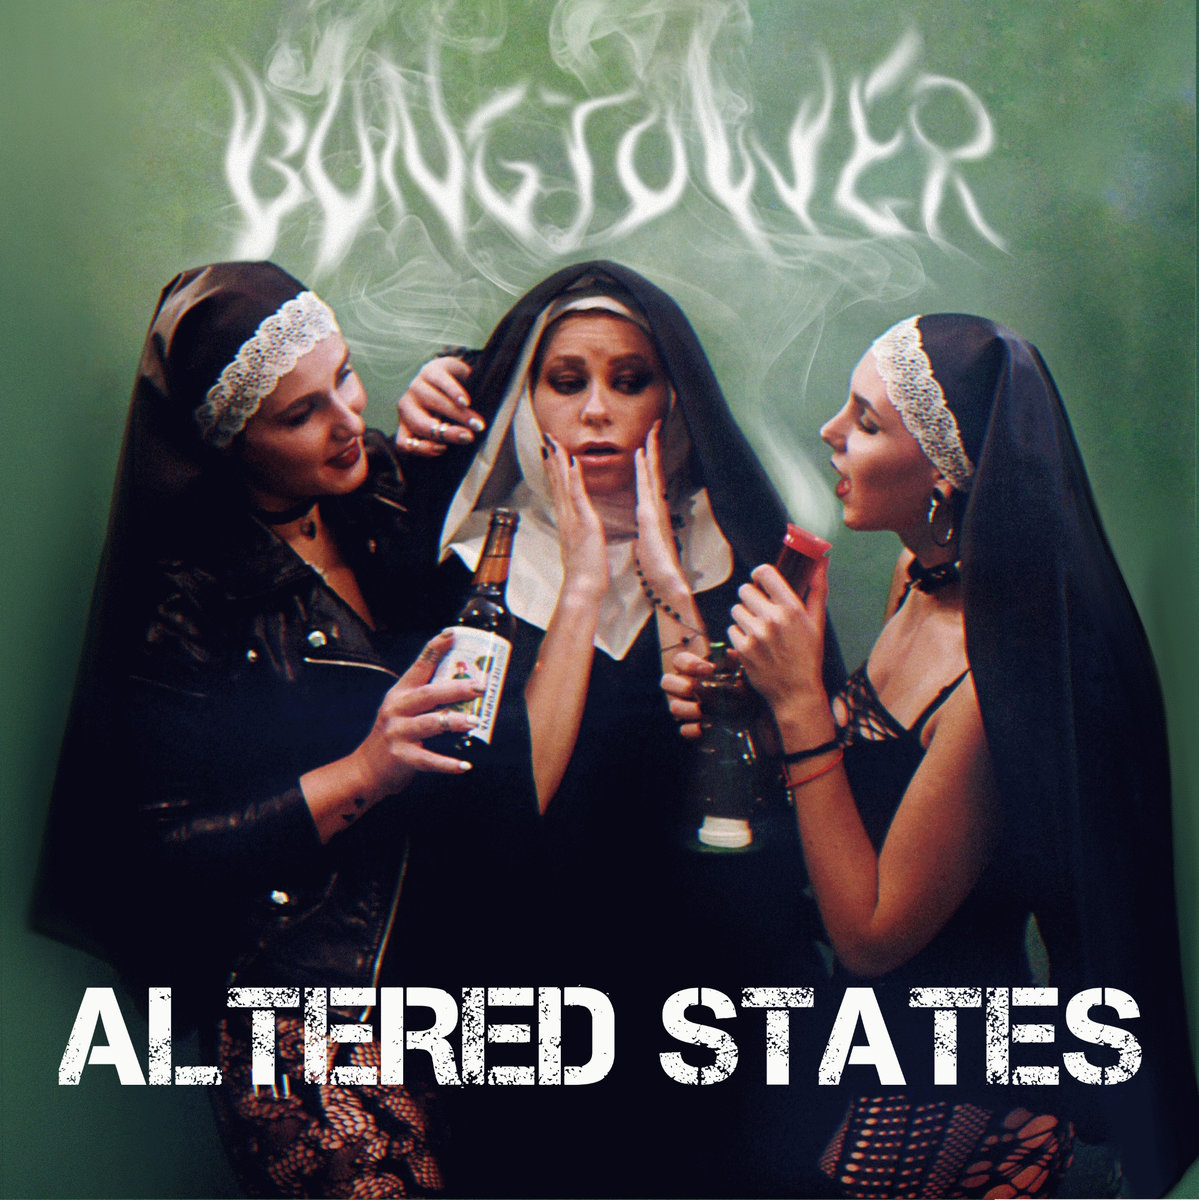 Bongtower - Pedal-driven Mind Expansion